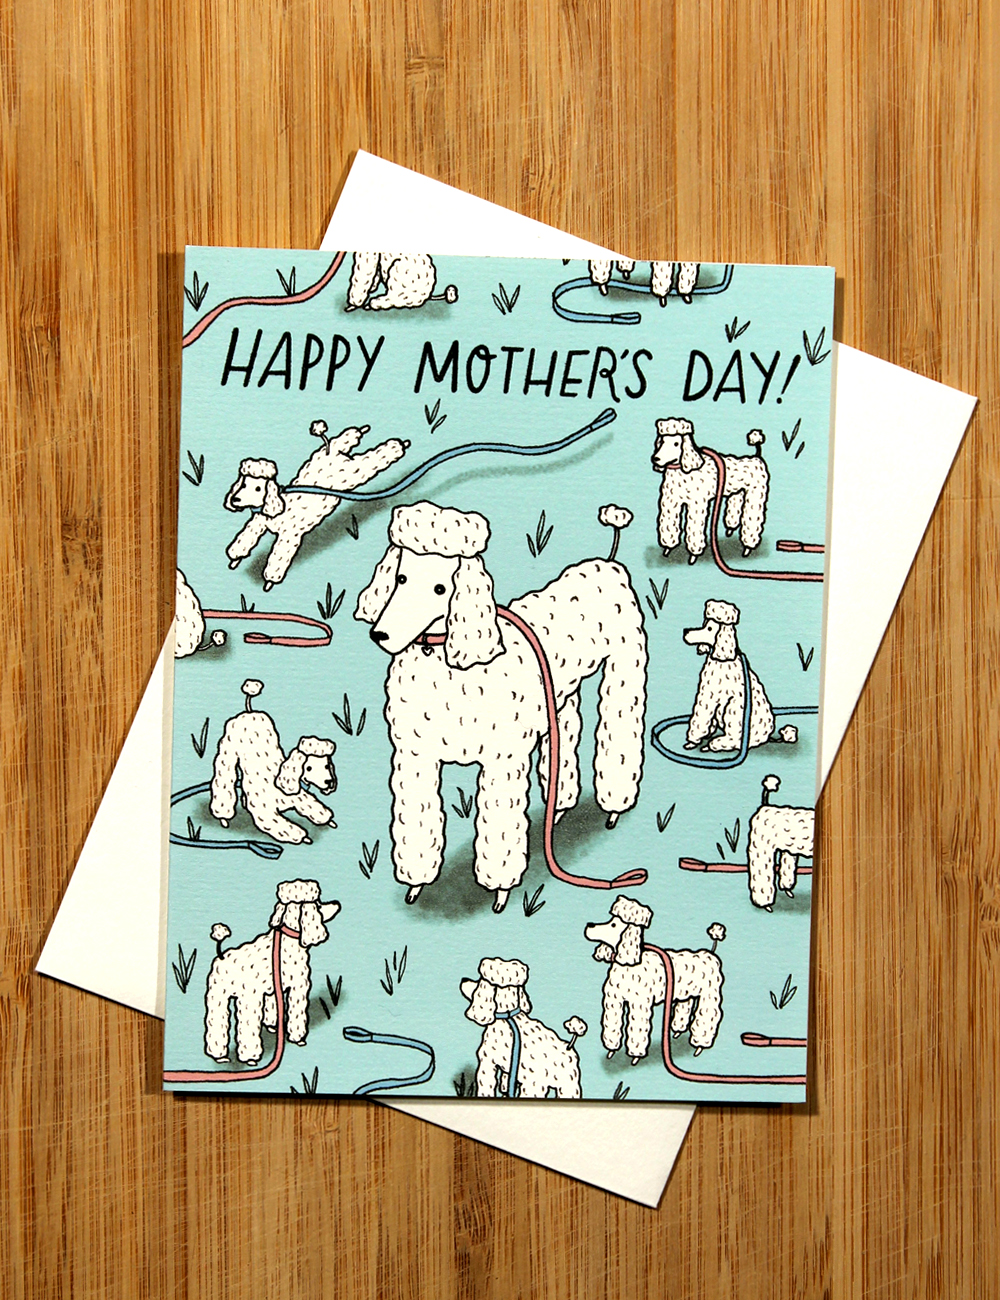 poodlemothersday.jpg